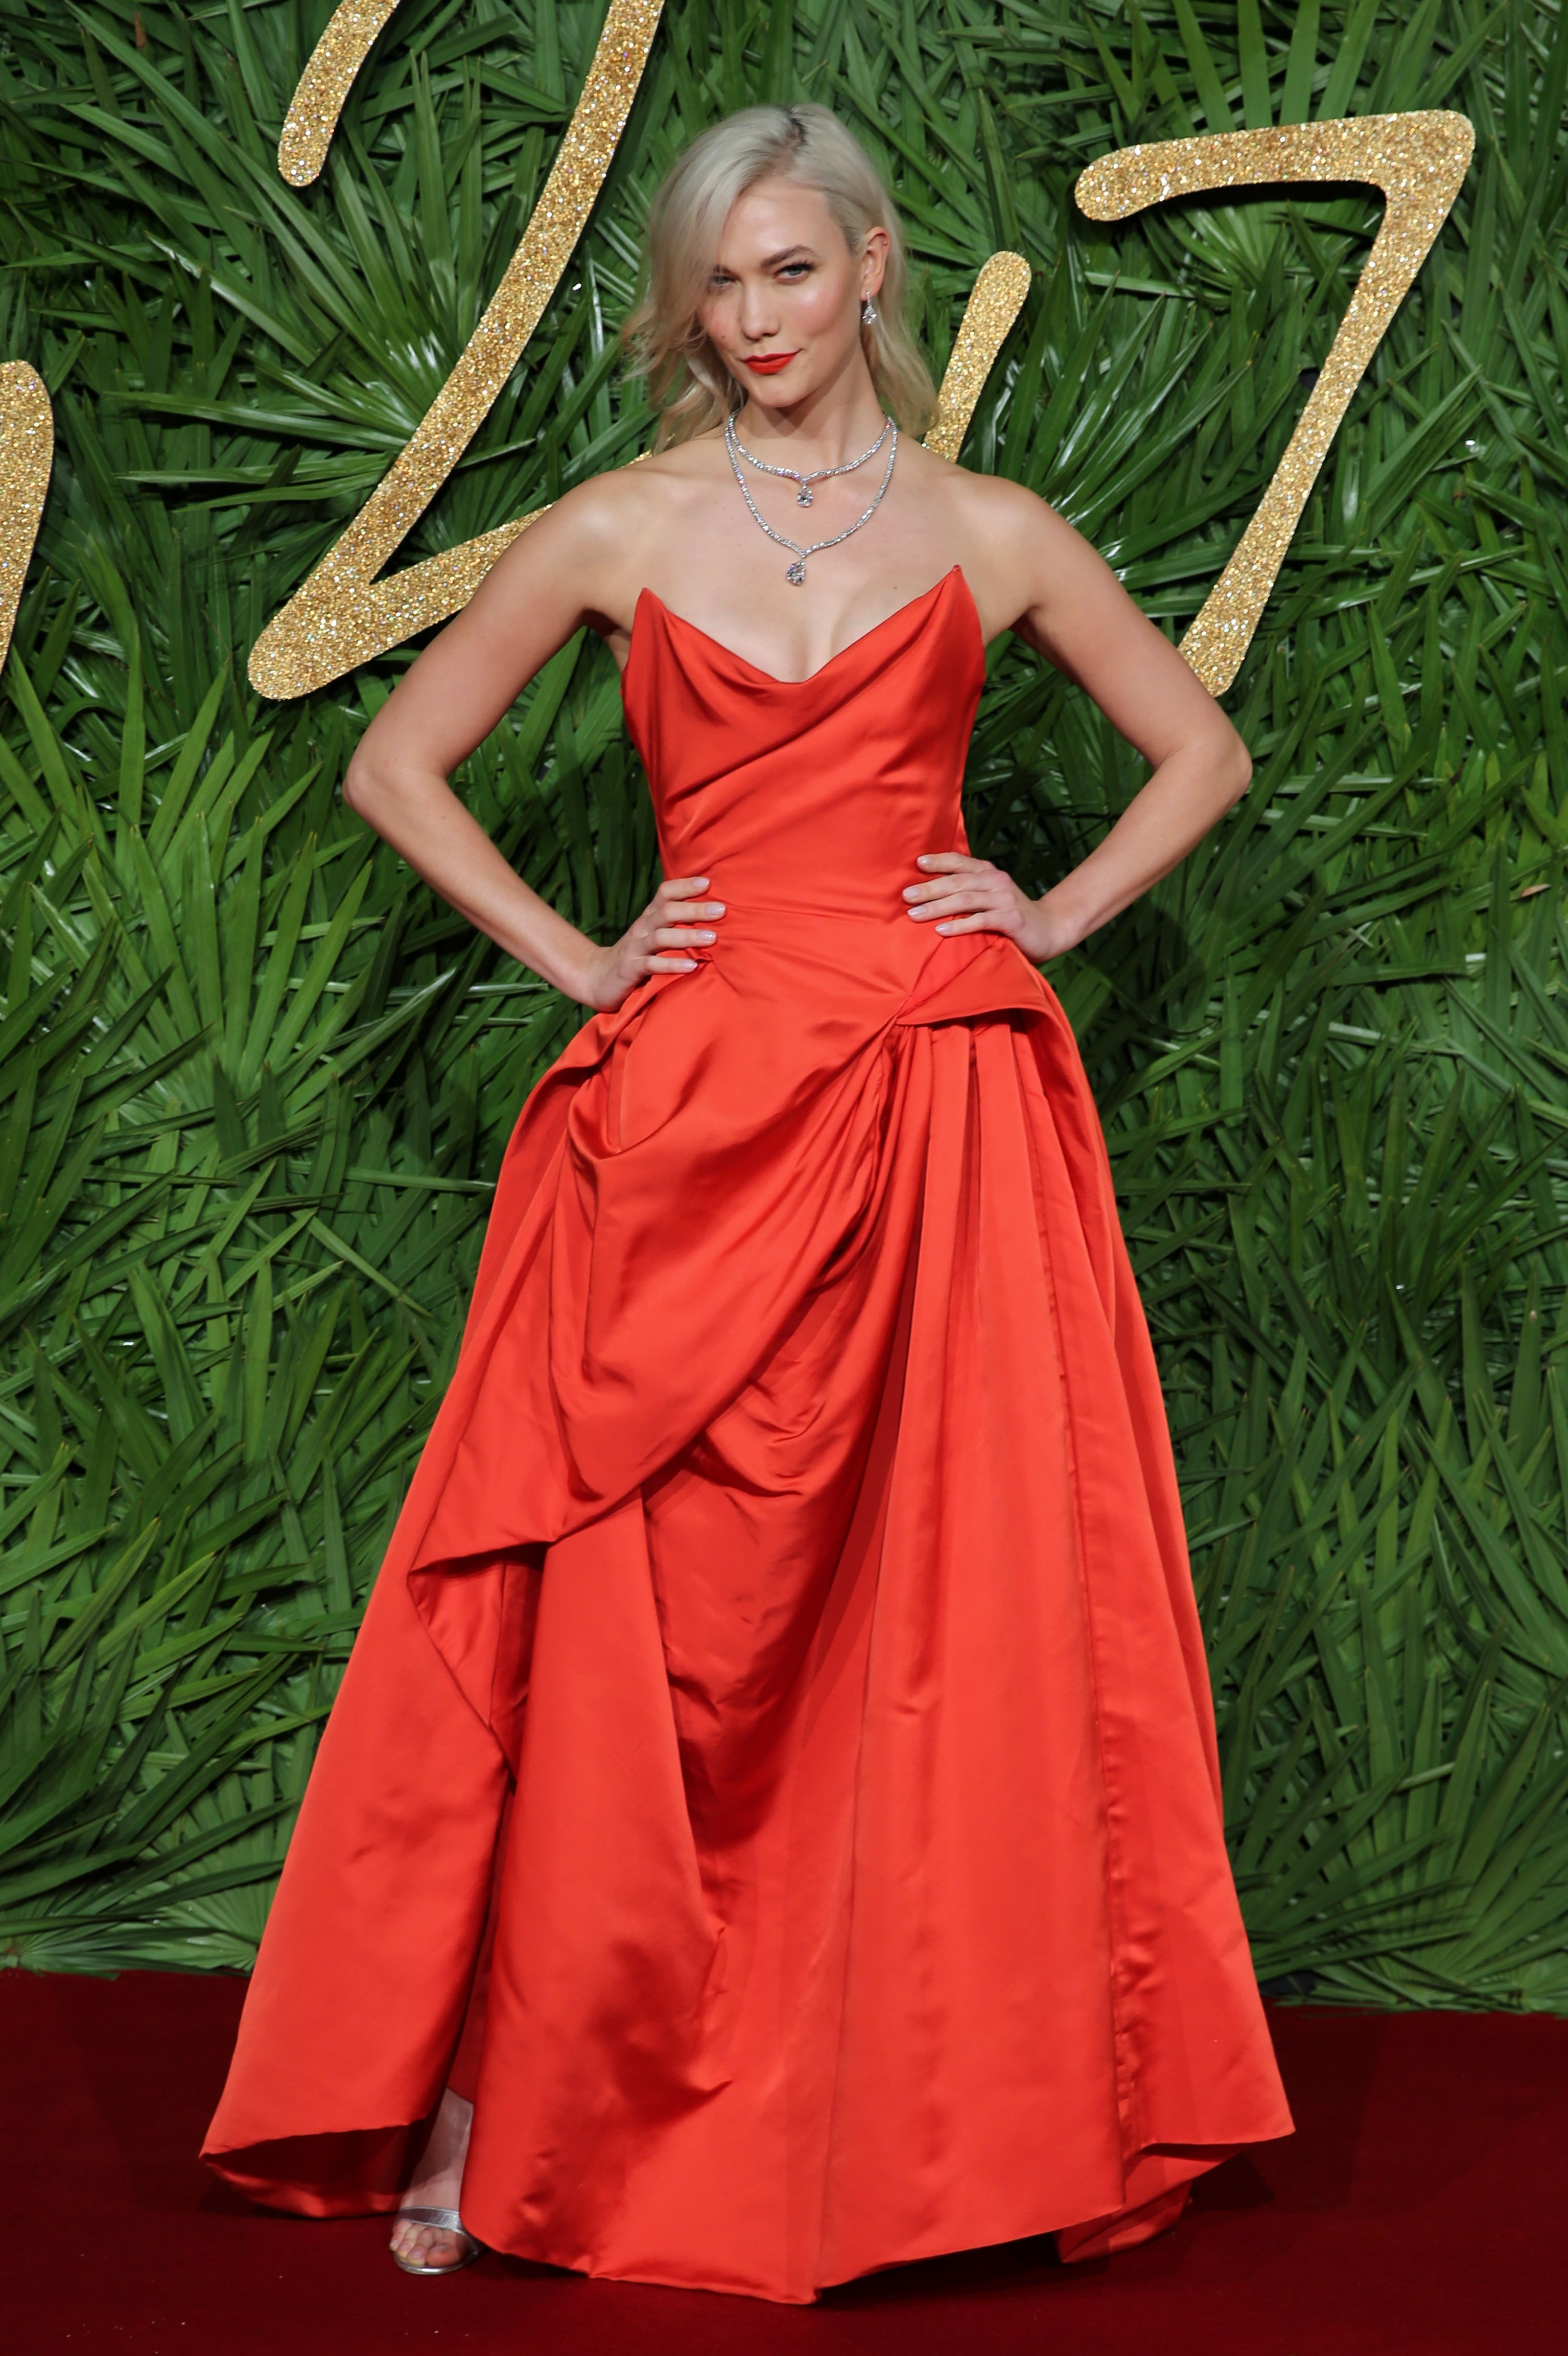 """American supermodel <a href=""""https://style.nine.com.au/karlie-kloss"""" target=""""_blank"""" draggable=""""false"""">Karlie Kloss</a> wore her style credentials on her sleeve as co-host of the <a href=""""https://style.nine.com.au/2017/12/05/08/29/british-fashion-awards-2018"""" target=""""_blank"""" draggable=""""false"""">British Fashion Awards 2017</a>, changing outfits seven times.<br /> Working beside comedian Jack Whitehall, the US Vogue favourite swapped effortlessly from Vivienne Westwood (pictured) to Gucci, to Erdem and even squeezed in a vintage Versace number to honour icon honouree Donatella Versace.<br /> Helping pull the distinct looks together for the 25-year-old was her star stylist Karla Welch, who also works with Ruth Negga, Lorde, Kaia Gerber and Amber Heard.<br /> Welch's favourite look from the night was a fitted blue dress with red gloves from Designer of the Year winner Raf Simons for Calvin Klein.<br /> The hosting gig capped off a stellar year for Kloss who is ranked the seventh-heighest earning model in the world and has 12.6 million social media followers. As well as championing her Kode initiative to get girls into computer coding, Kloss has worked with Swarovski and returned to the runway for Victoria's Secret in Shanghai.<br />"""